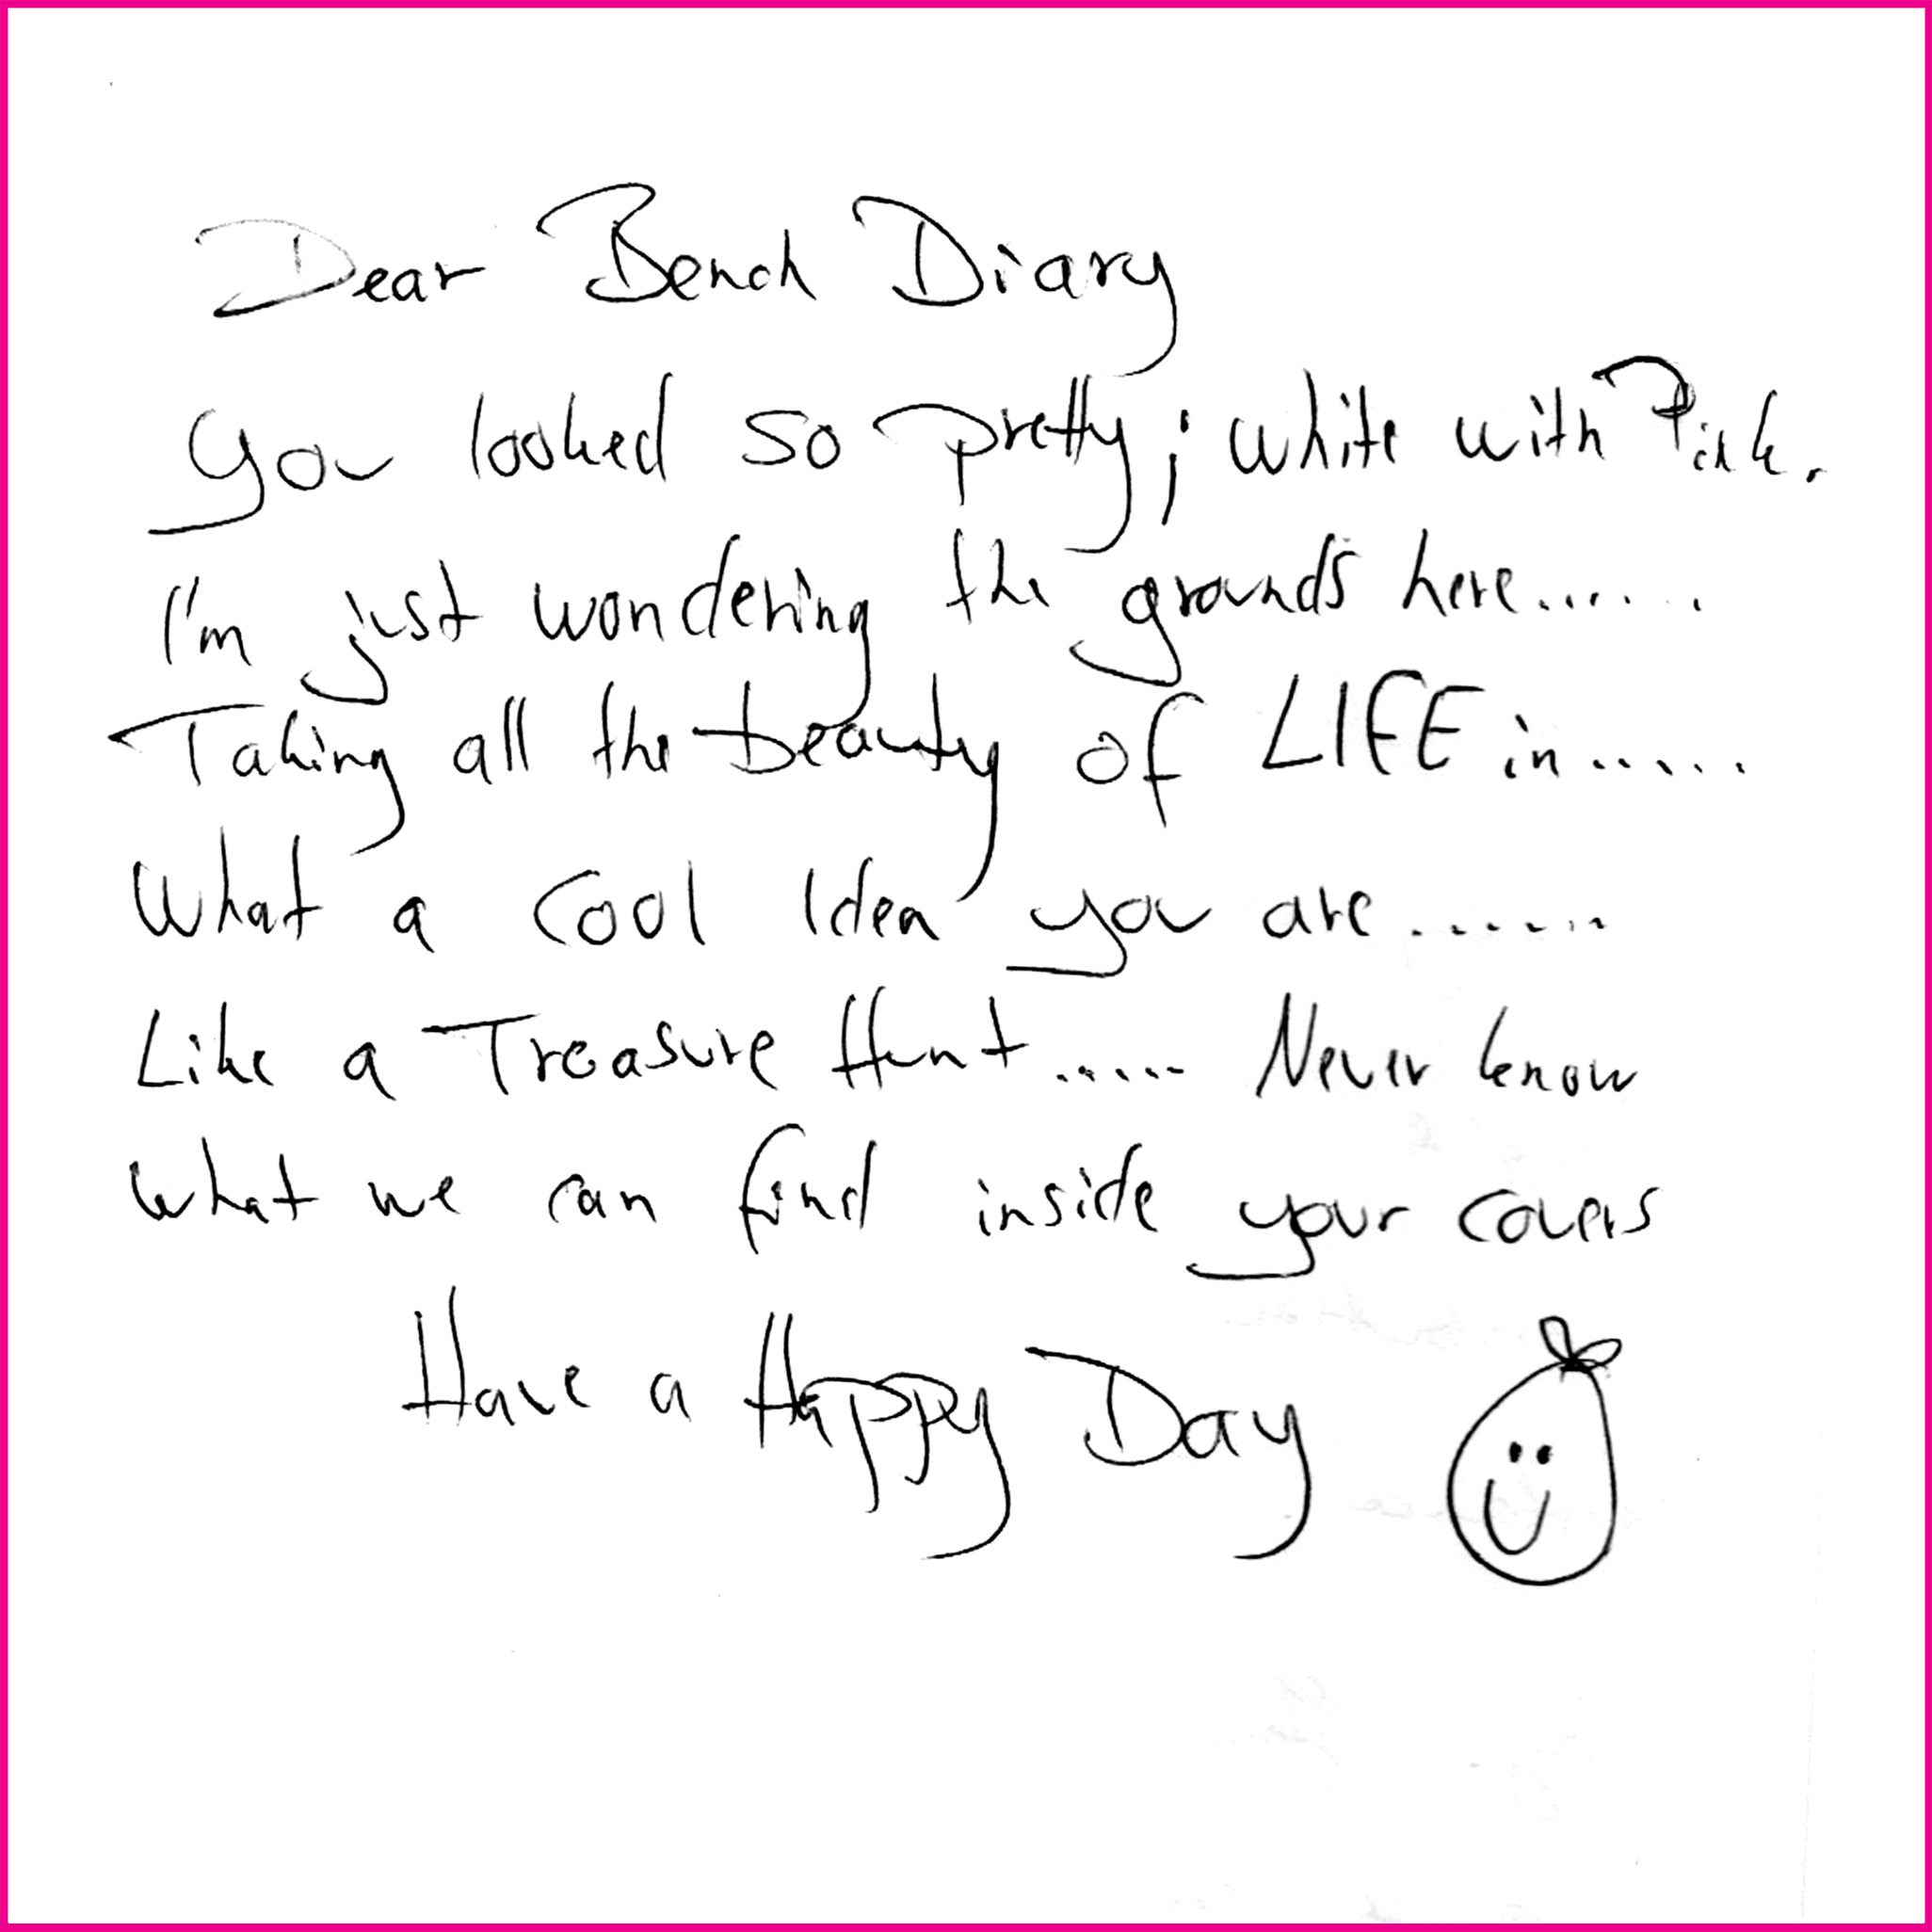 Dear Bench Diary  You looked so pretty; white with pink, I'm just wandering the grounds here…Taking all the beauty of LIFE…What a cool idea you are…Like a treasure hunt..never know we can find inside your covers.  Have a Happy Day